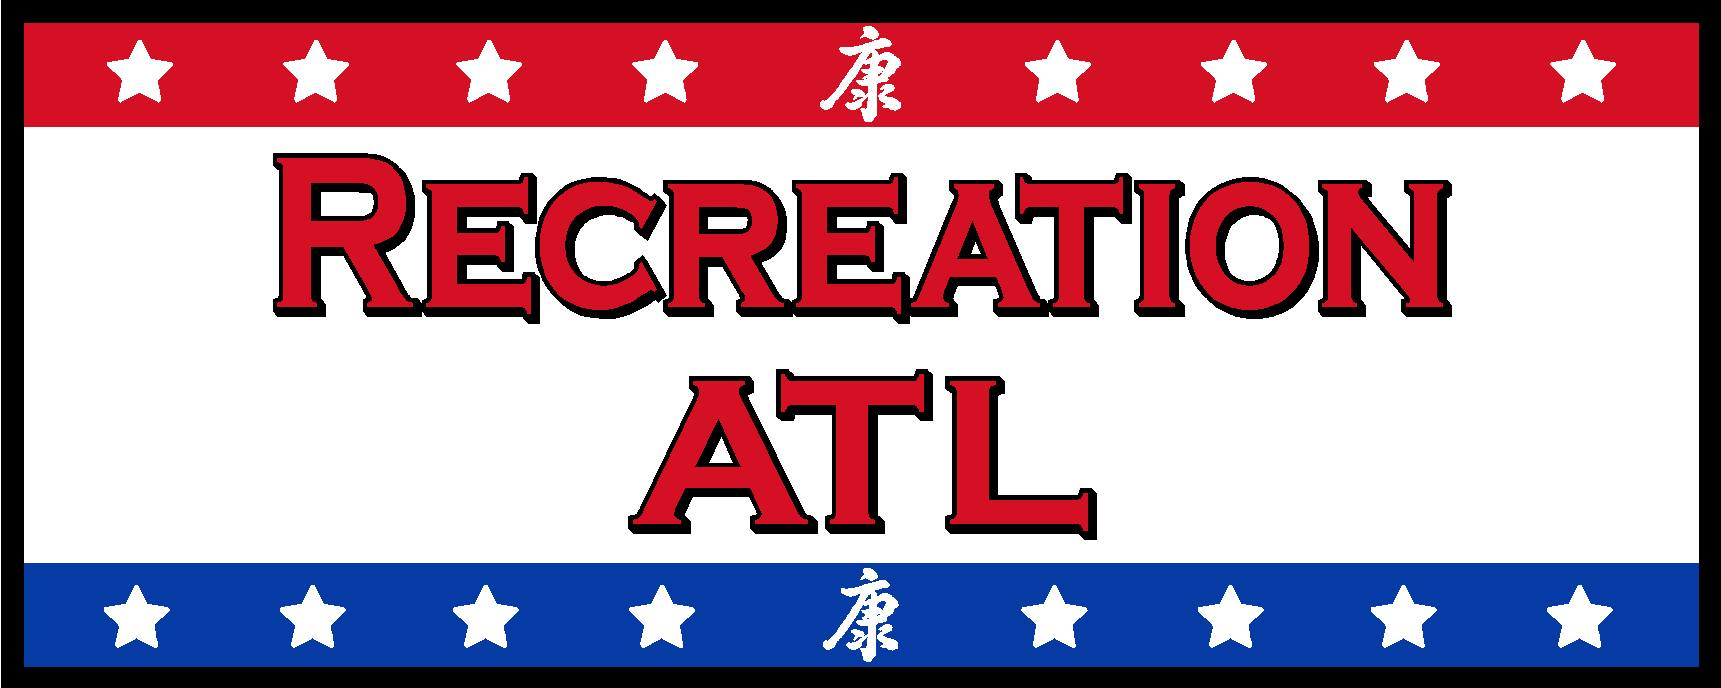 RECREATIONATL